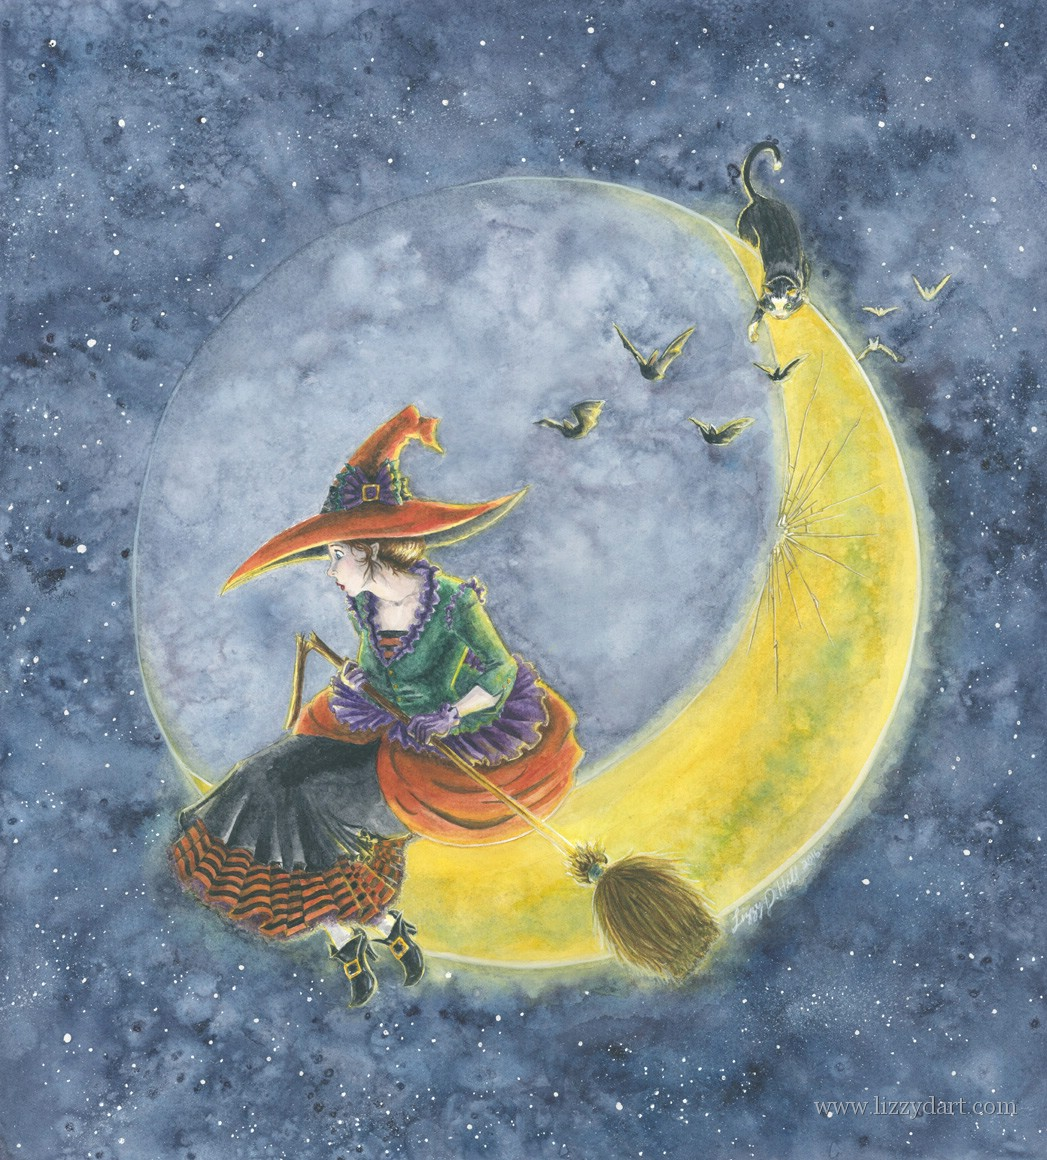 A watercolor painting of a witch who has crashed on the moon breaking her broom in the process. While she tries to figure out how to get down her cat entertains itself going after bats fluttering by.